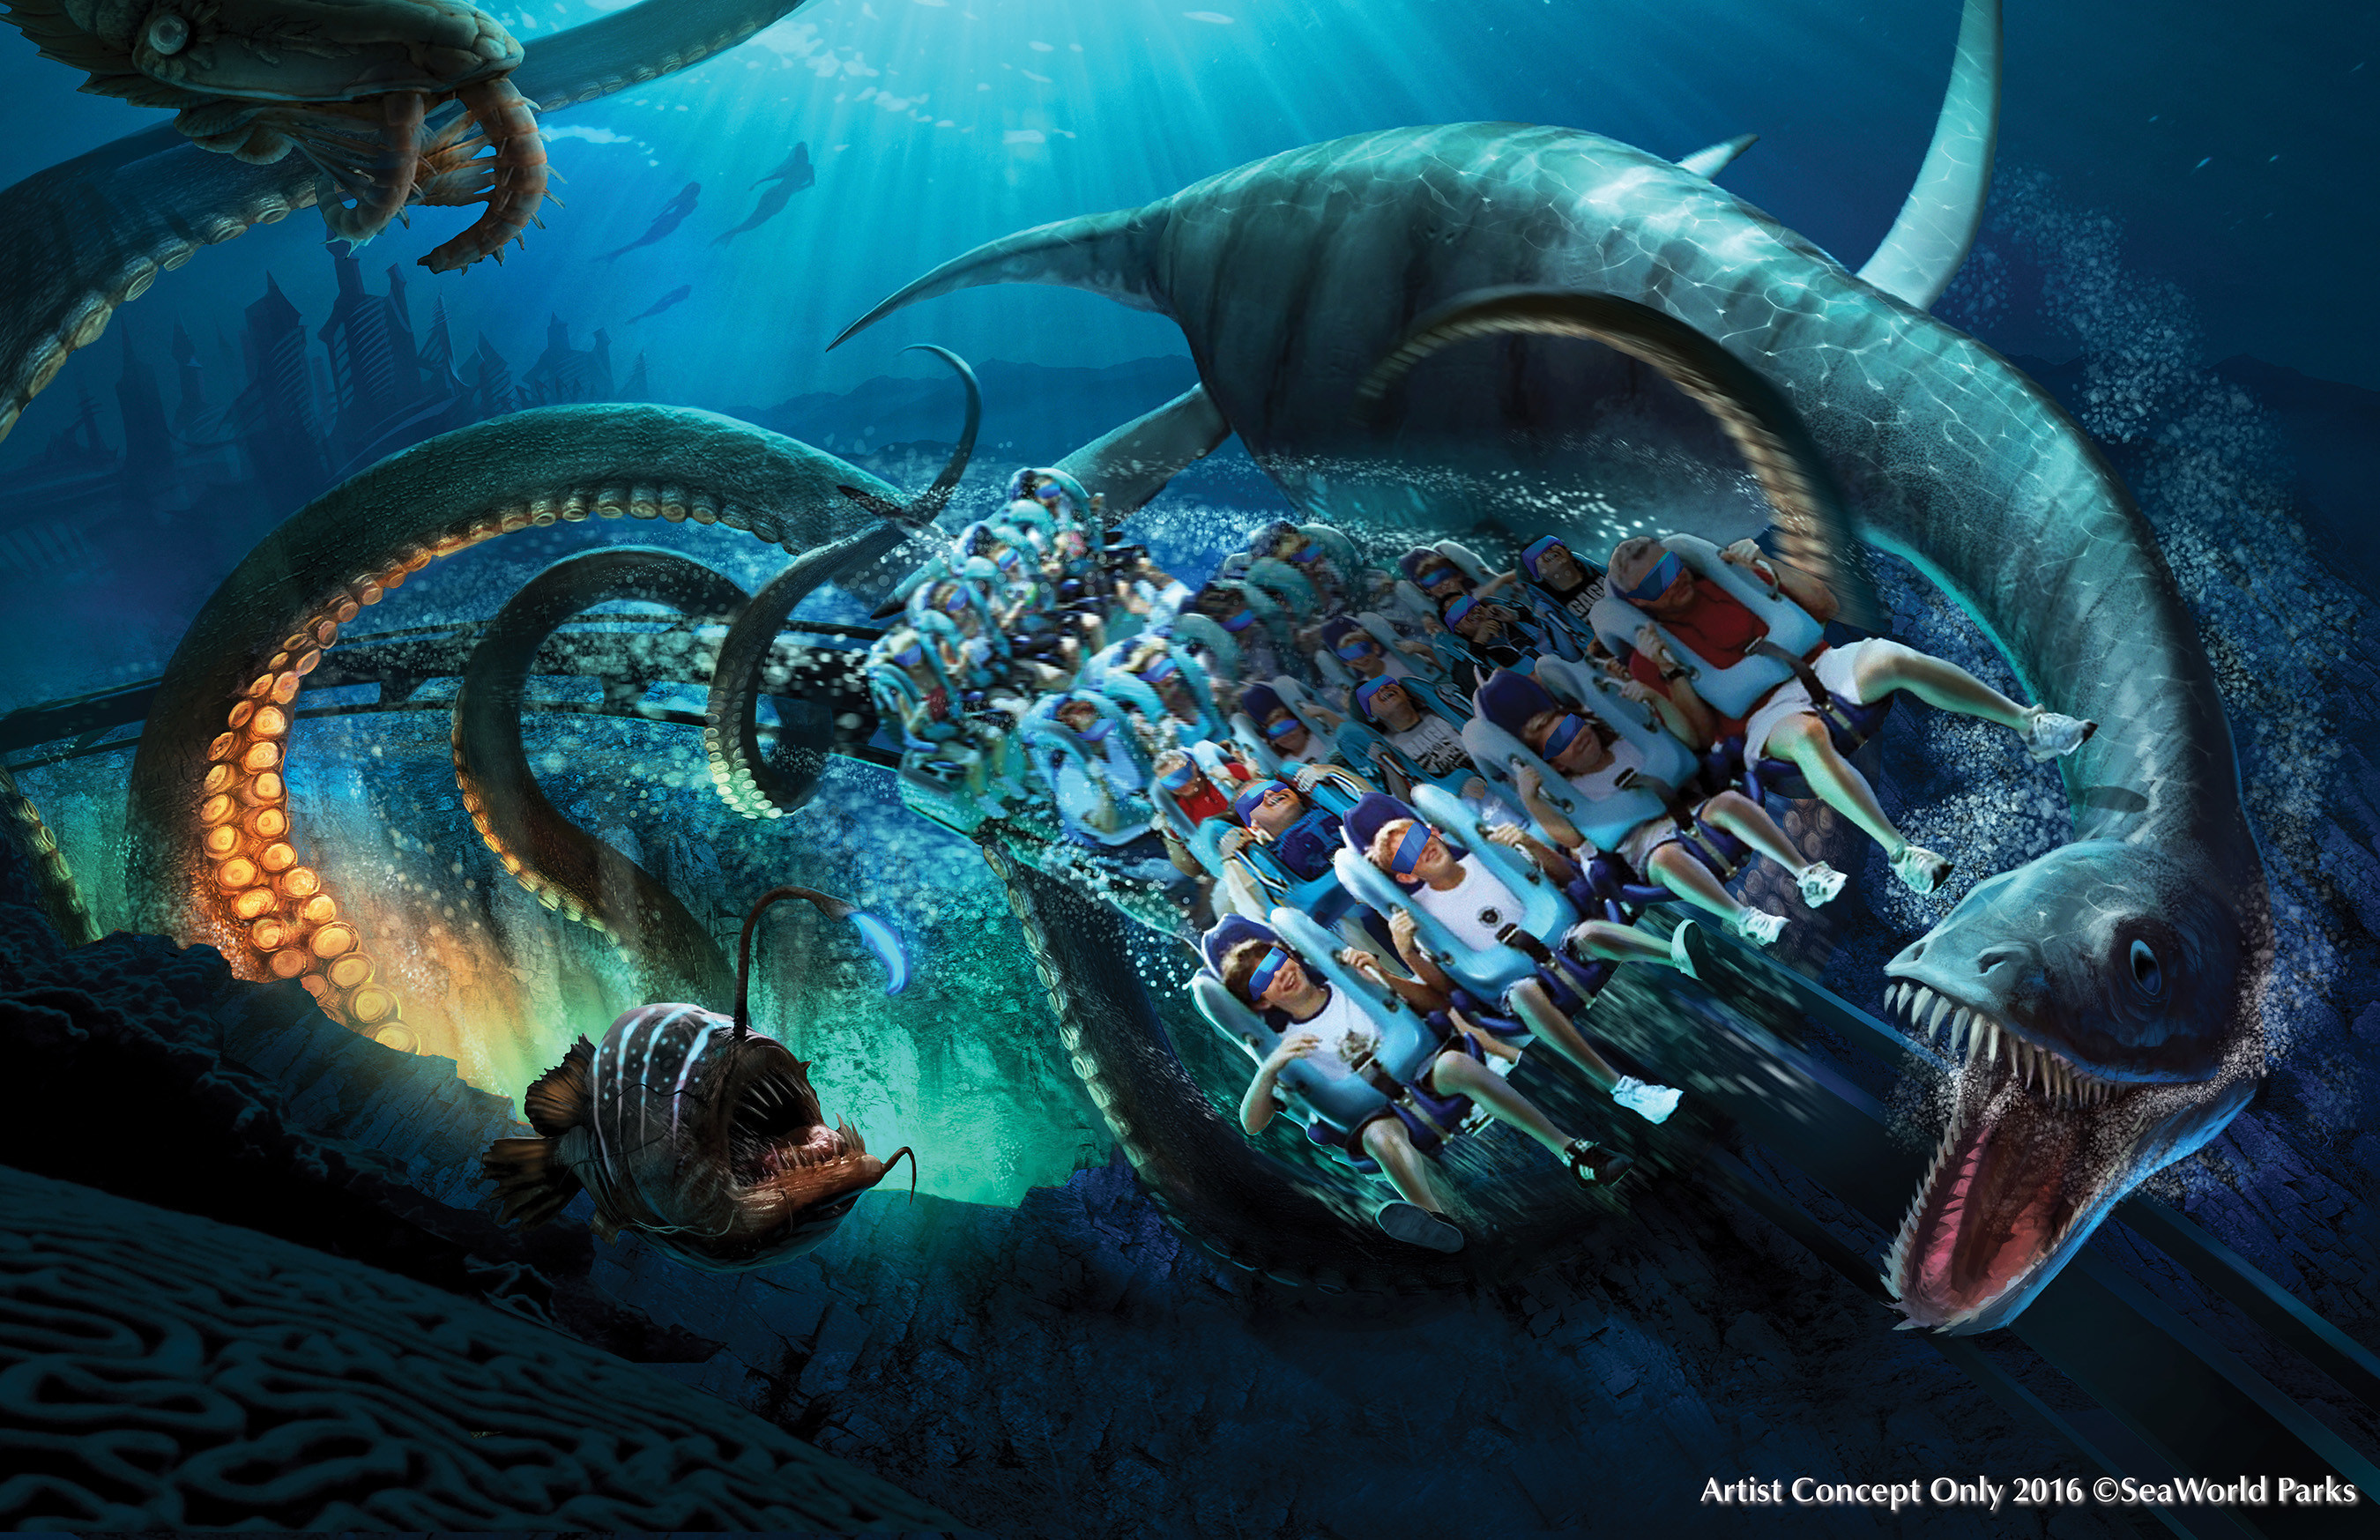 """Kraken(R) Virtual Reality (VR) roller coaster, coming to SeaWorld Orlando 2017. The park's popular Kraken roller coaster will be transformed into a """"deep sea"""" virtual reality coaster experience, the only VR coaster experience in Florida - taking riders on a mission alongside sea creatures inspired by extinct and legendary animals of the past.  A custom digital overlay with uniquely designed headsets, fully integrated both mechanically and electronically into the coaster train, delivers a new one-of-a-kind adventure.  Credit: Artist Concept Only - 2016 (C)SeaWorld Parks"""